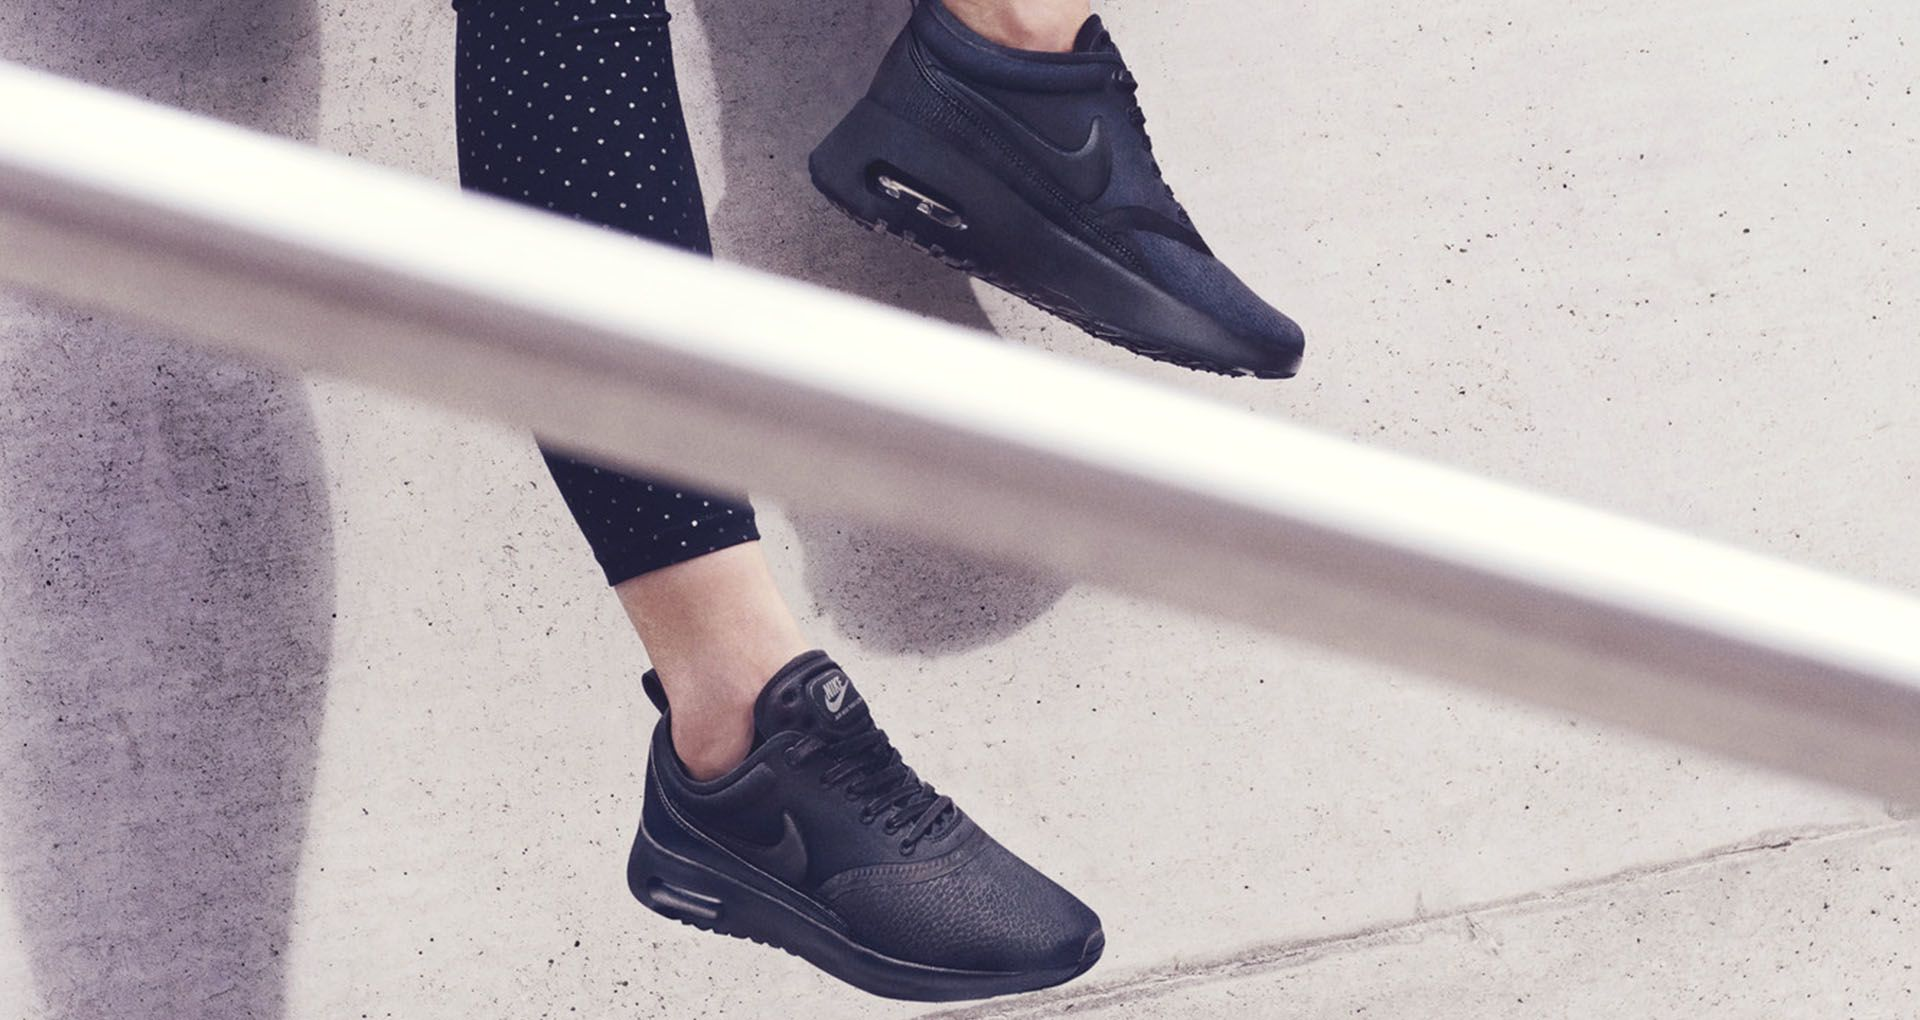 the best attitude 02527 602f0 WMNS AIR MAX THEA ULTRA PREMIUM. NIKE BEAUTIFUL X POWERFUL